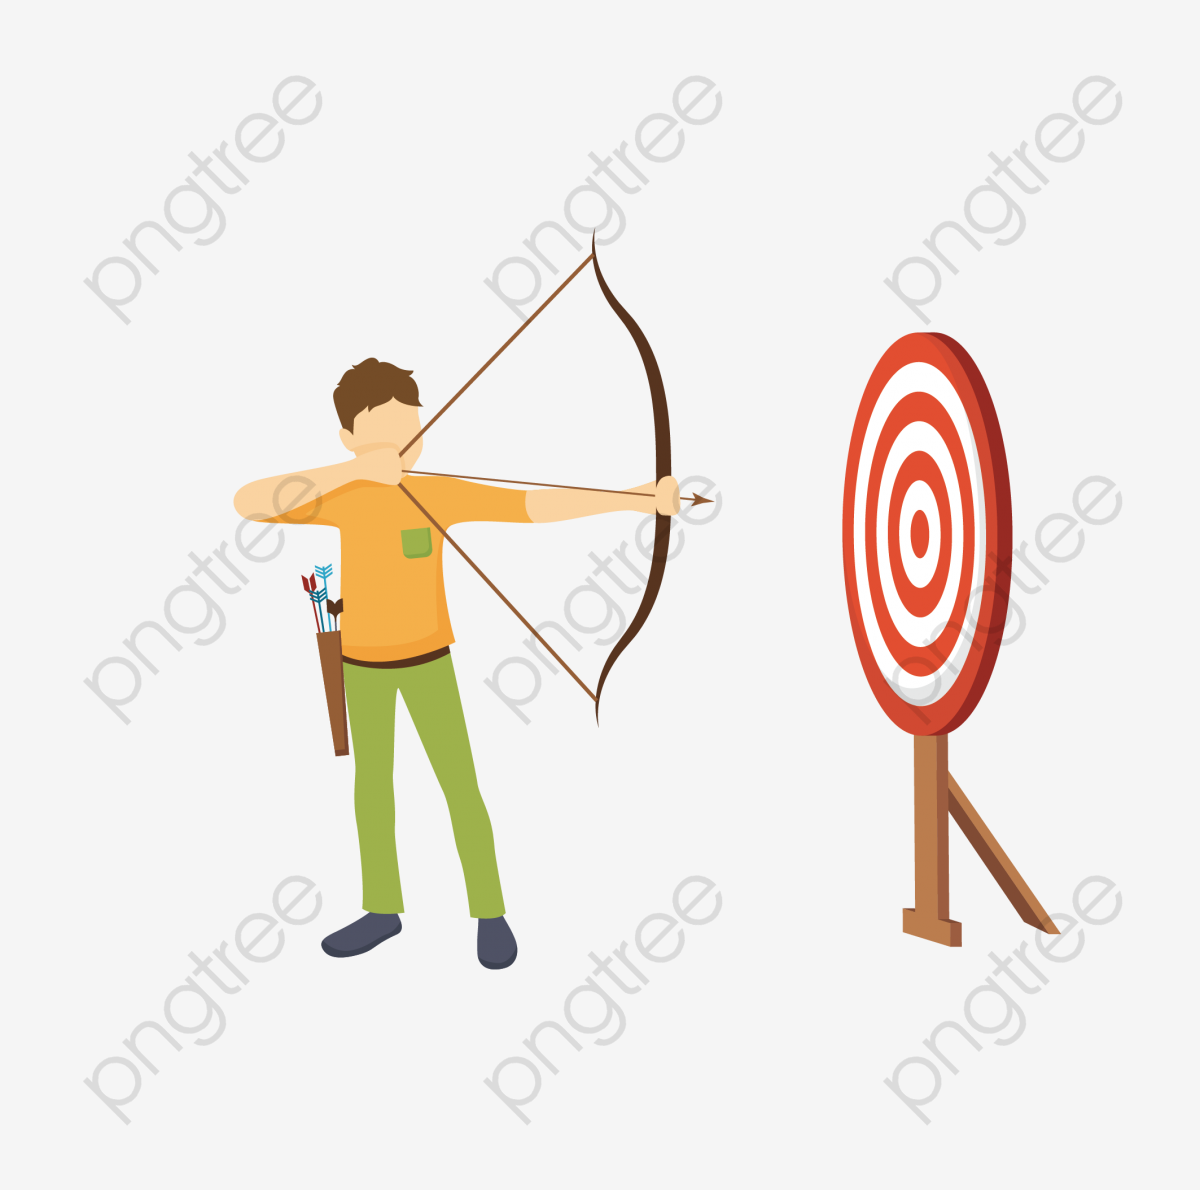 Transparent man archery PNG Format Image With Size 2126*2126 Preview.